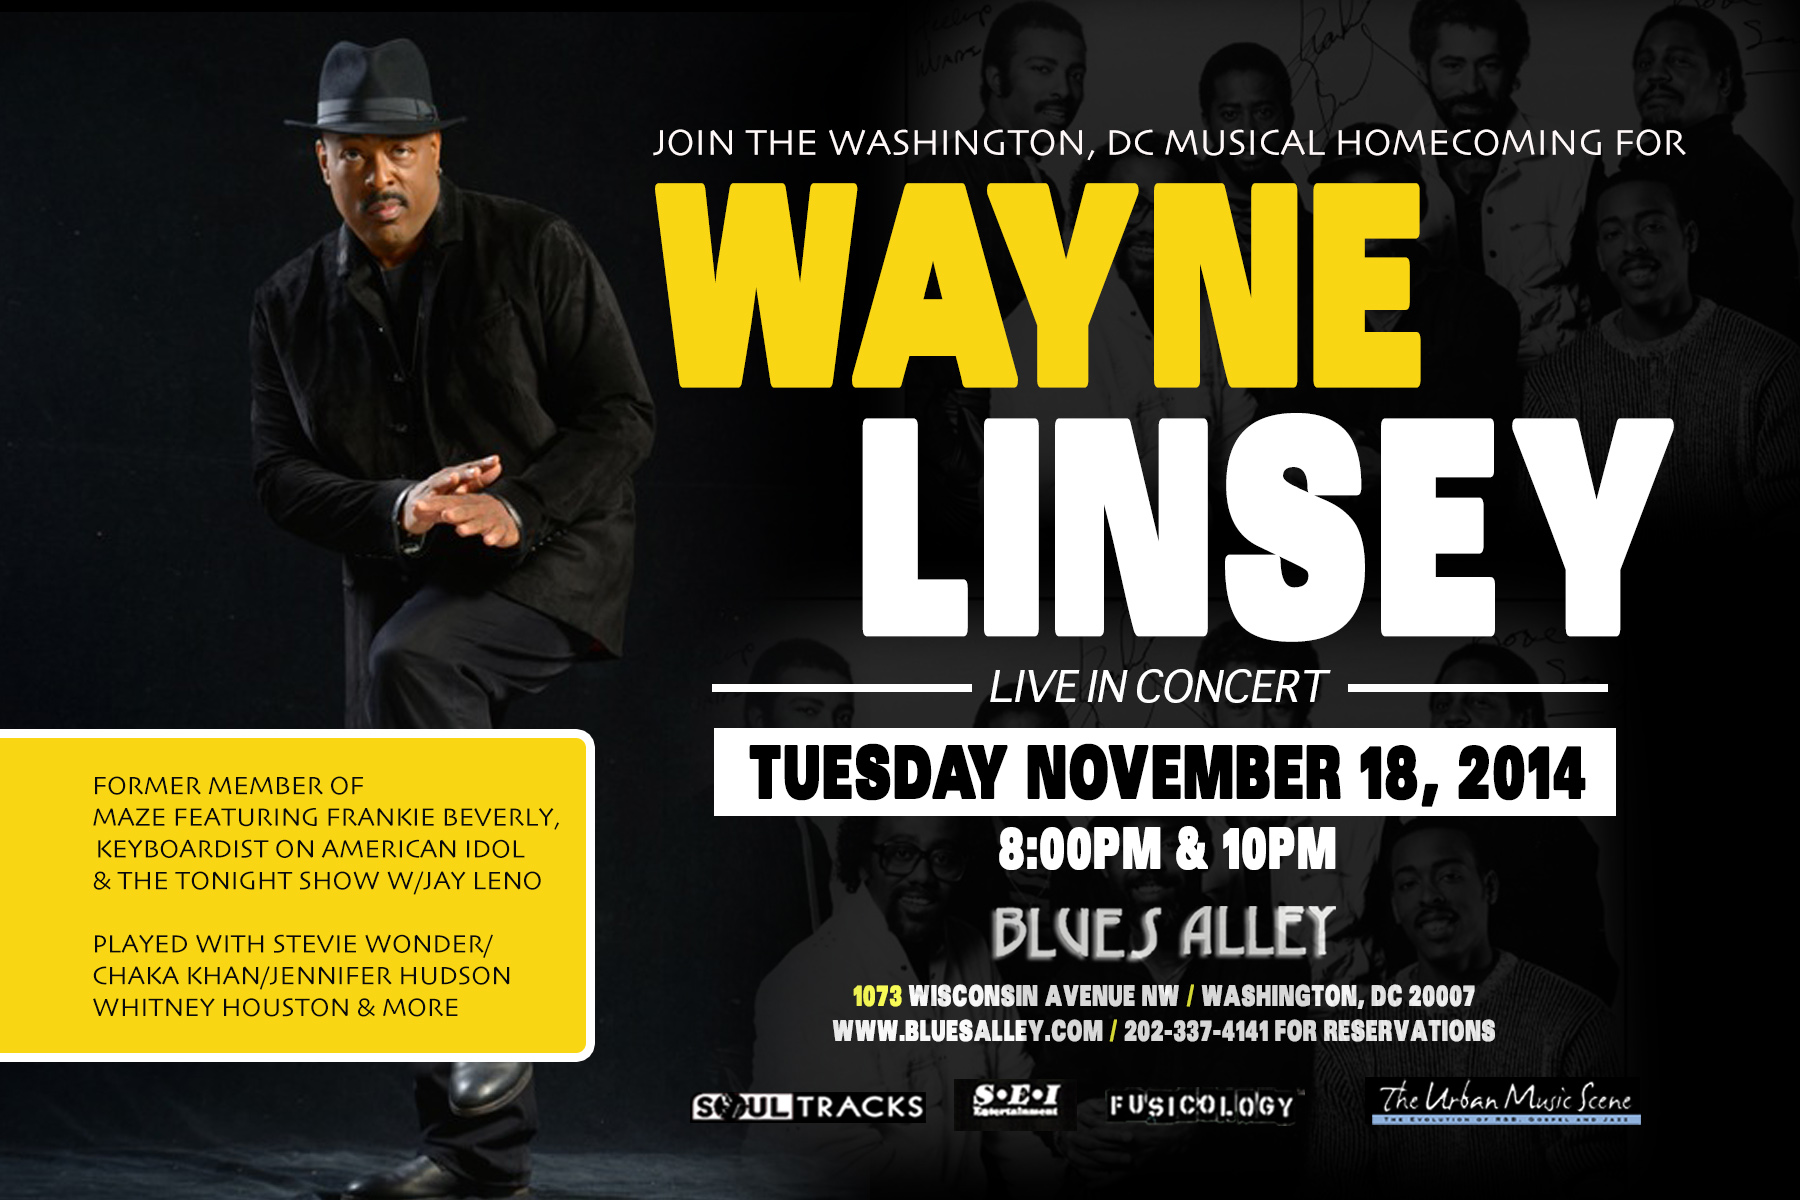 Wayne Linsey LIVE at Blues Alley